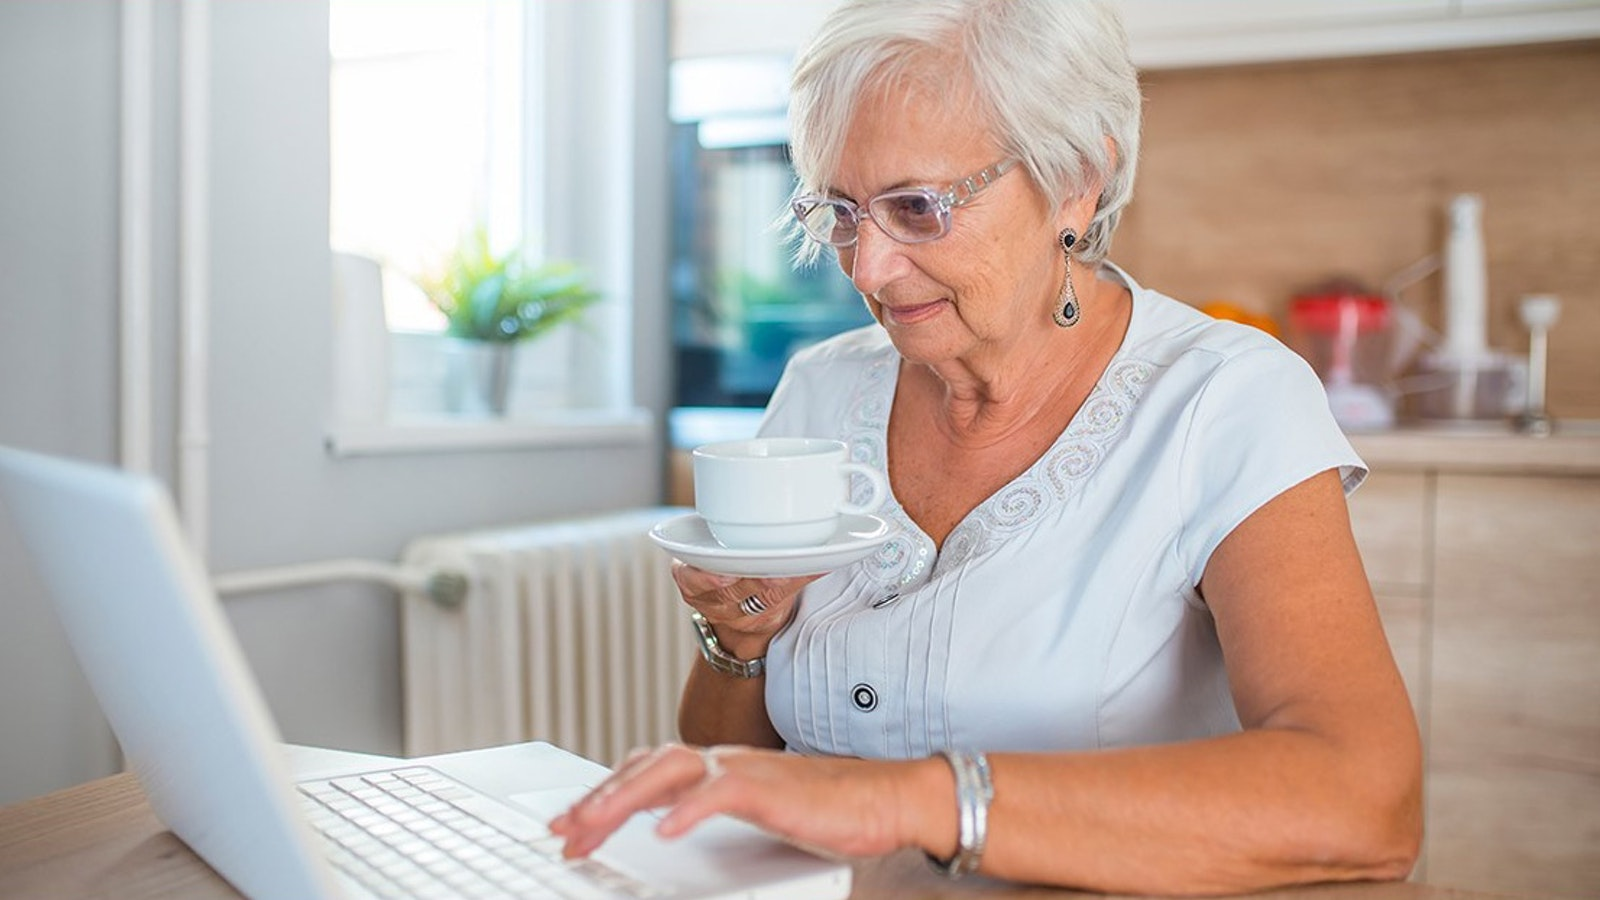 Mature woman on computer